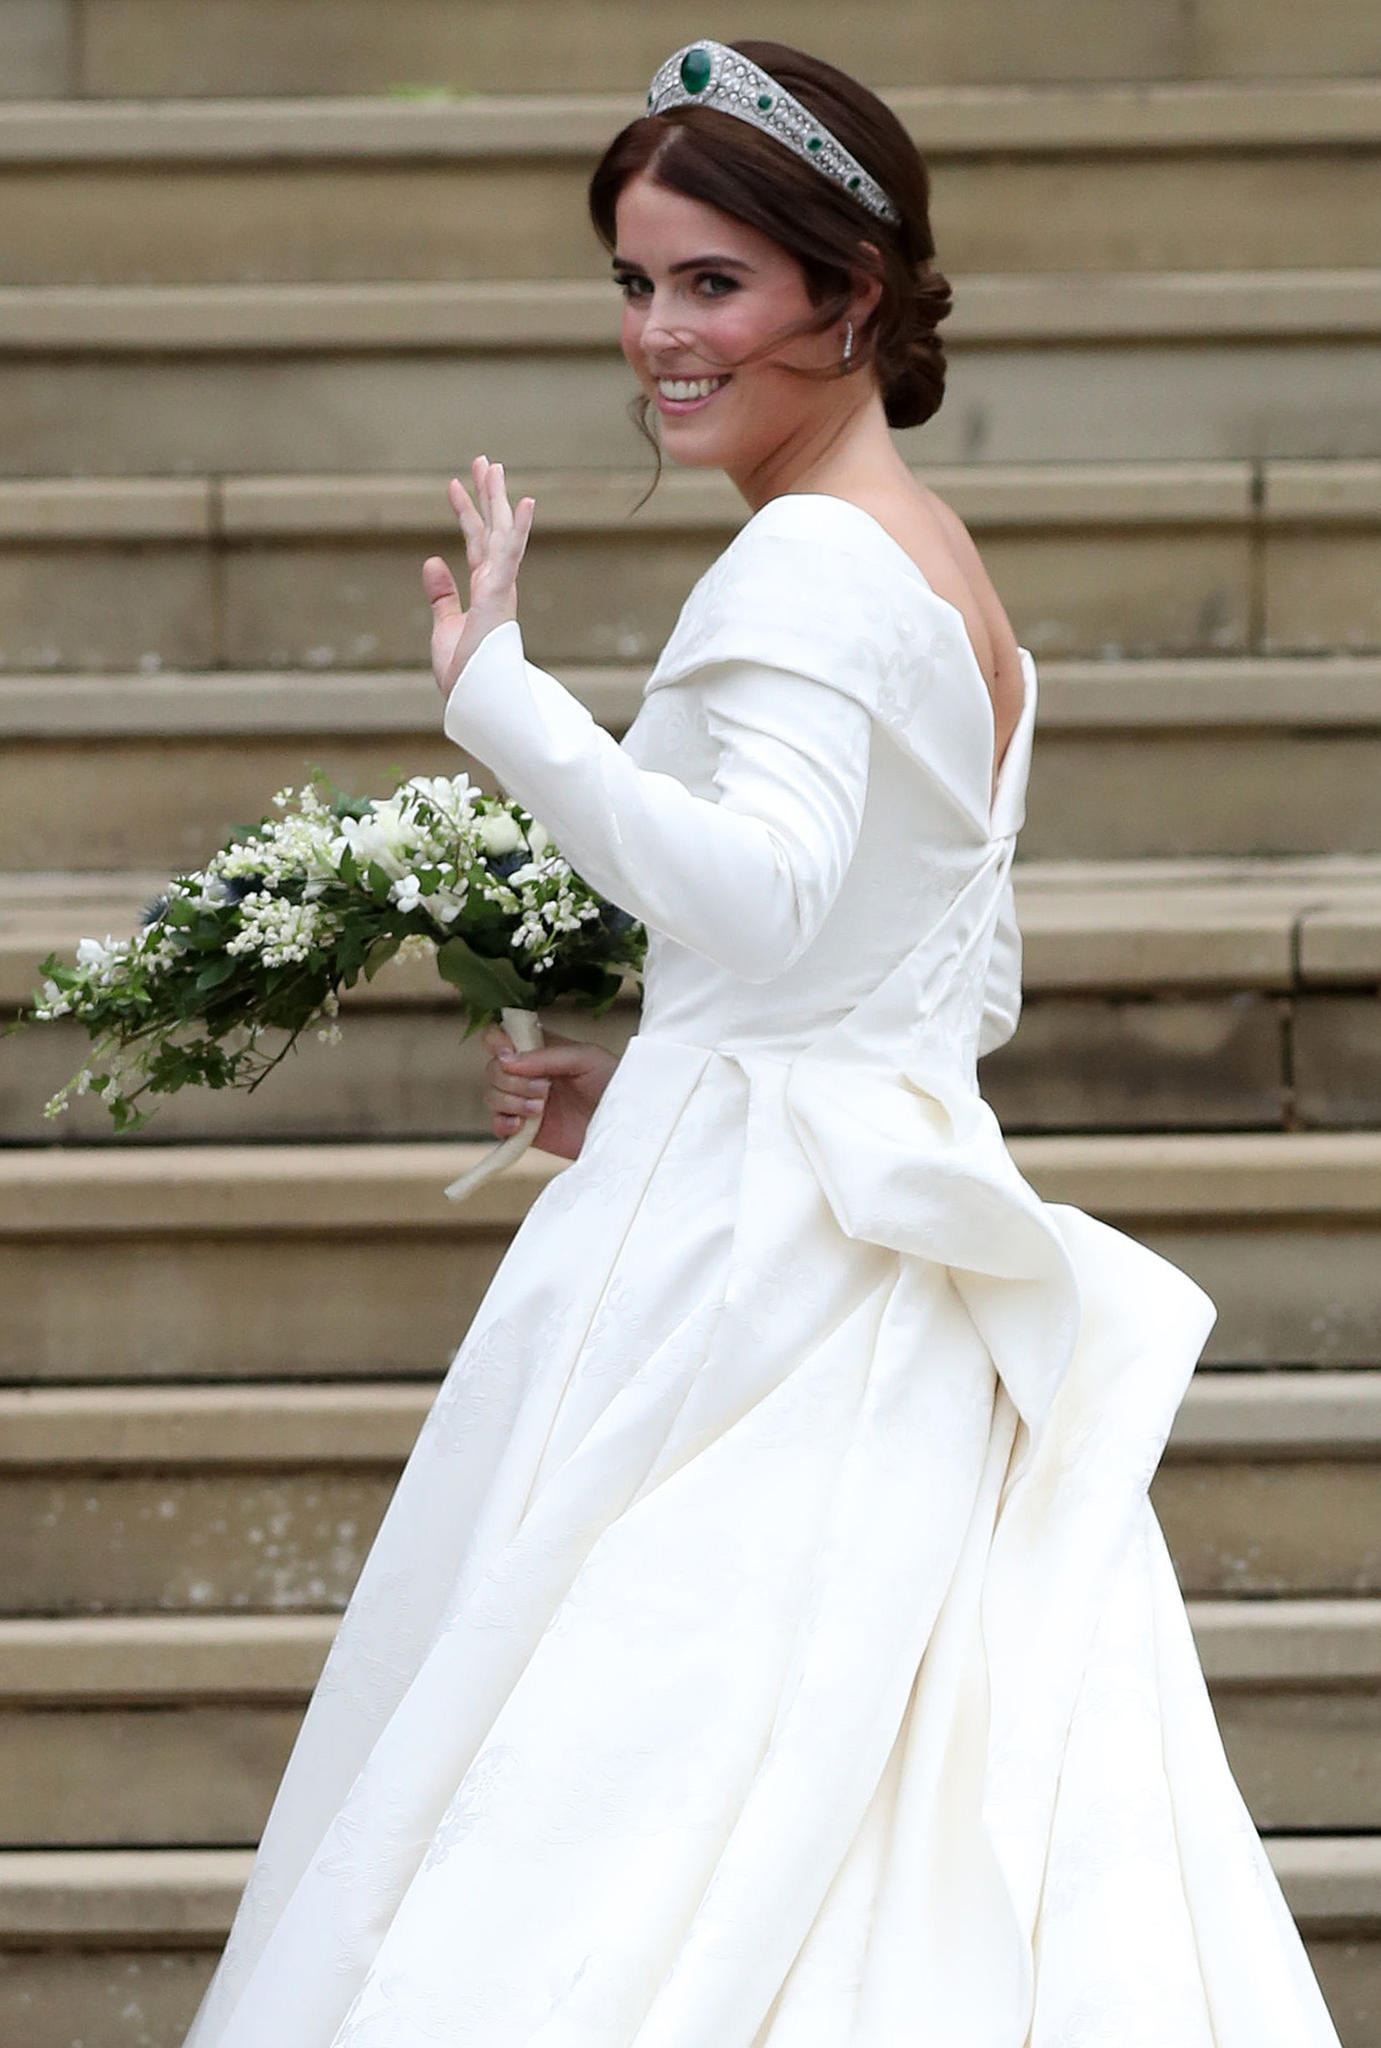 Prinzessin Eugenie: In Diesem Kleid Heiratet Sie Jack